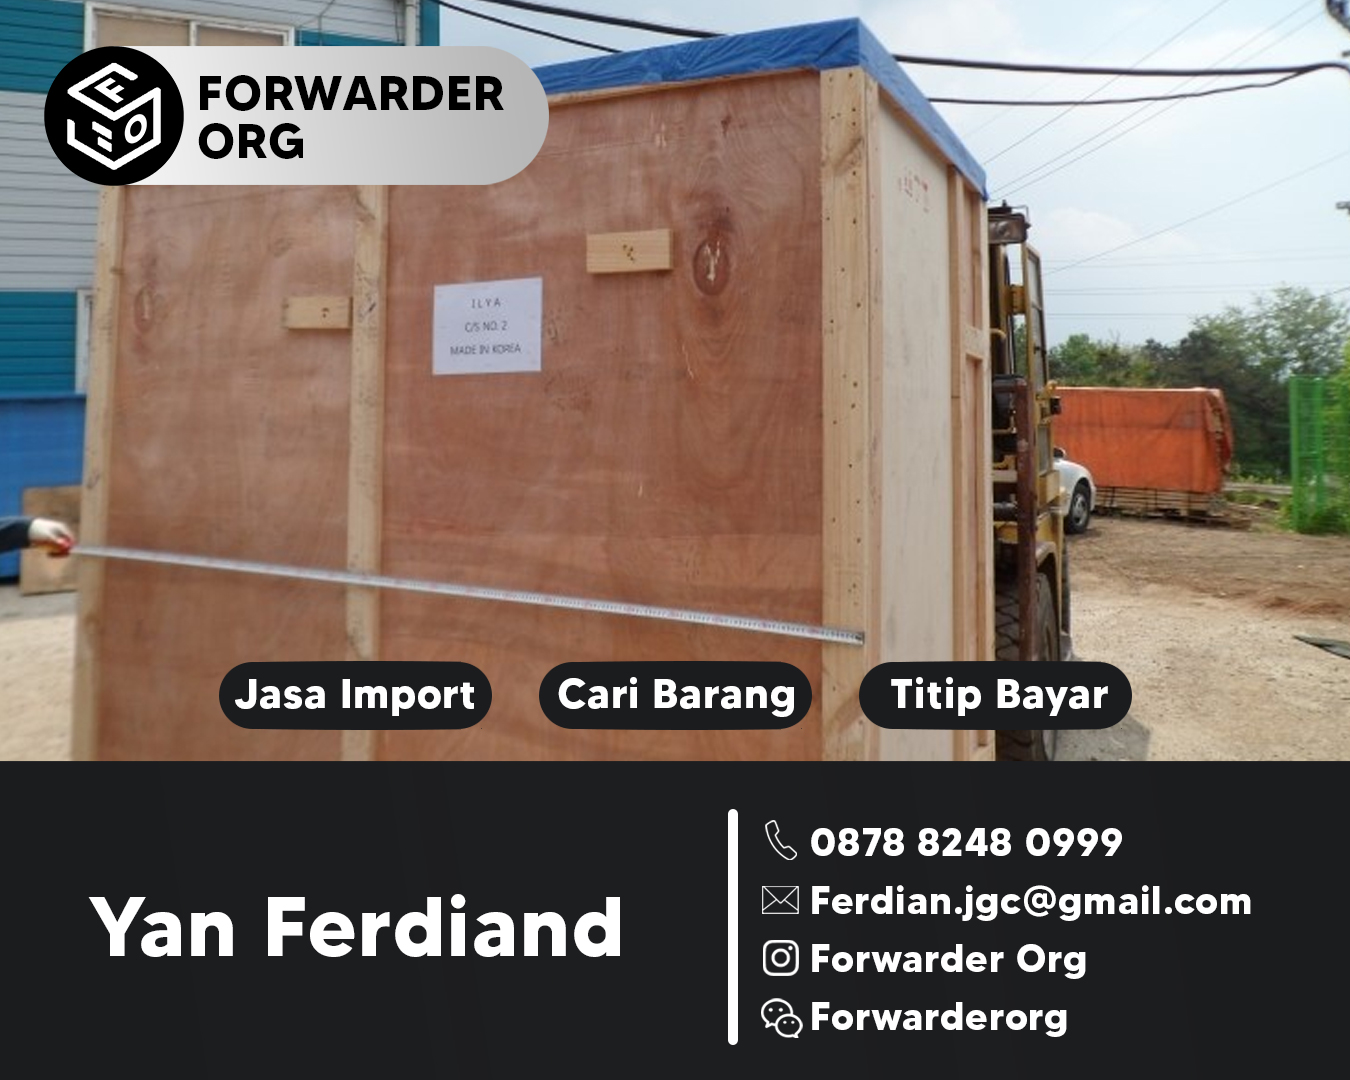 Jasa Import Door to Door China Minimum 0.3 CBM | FORWARDER ORG